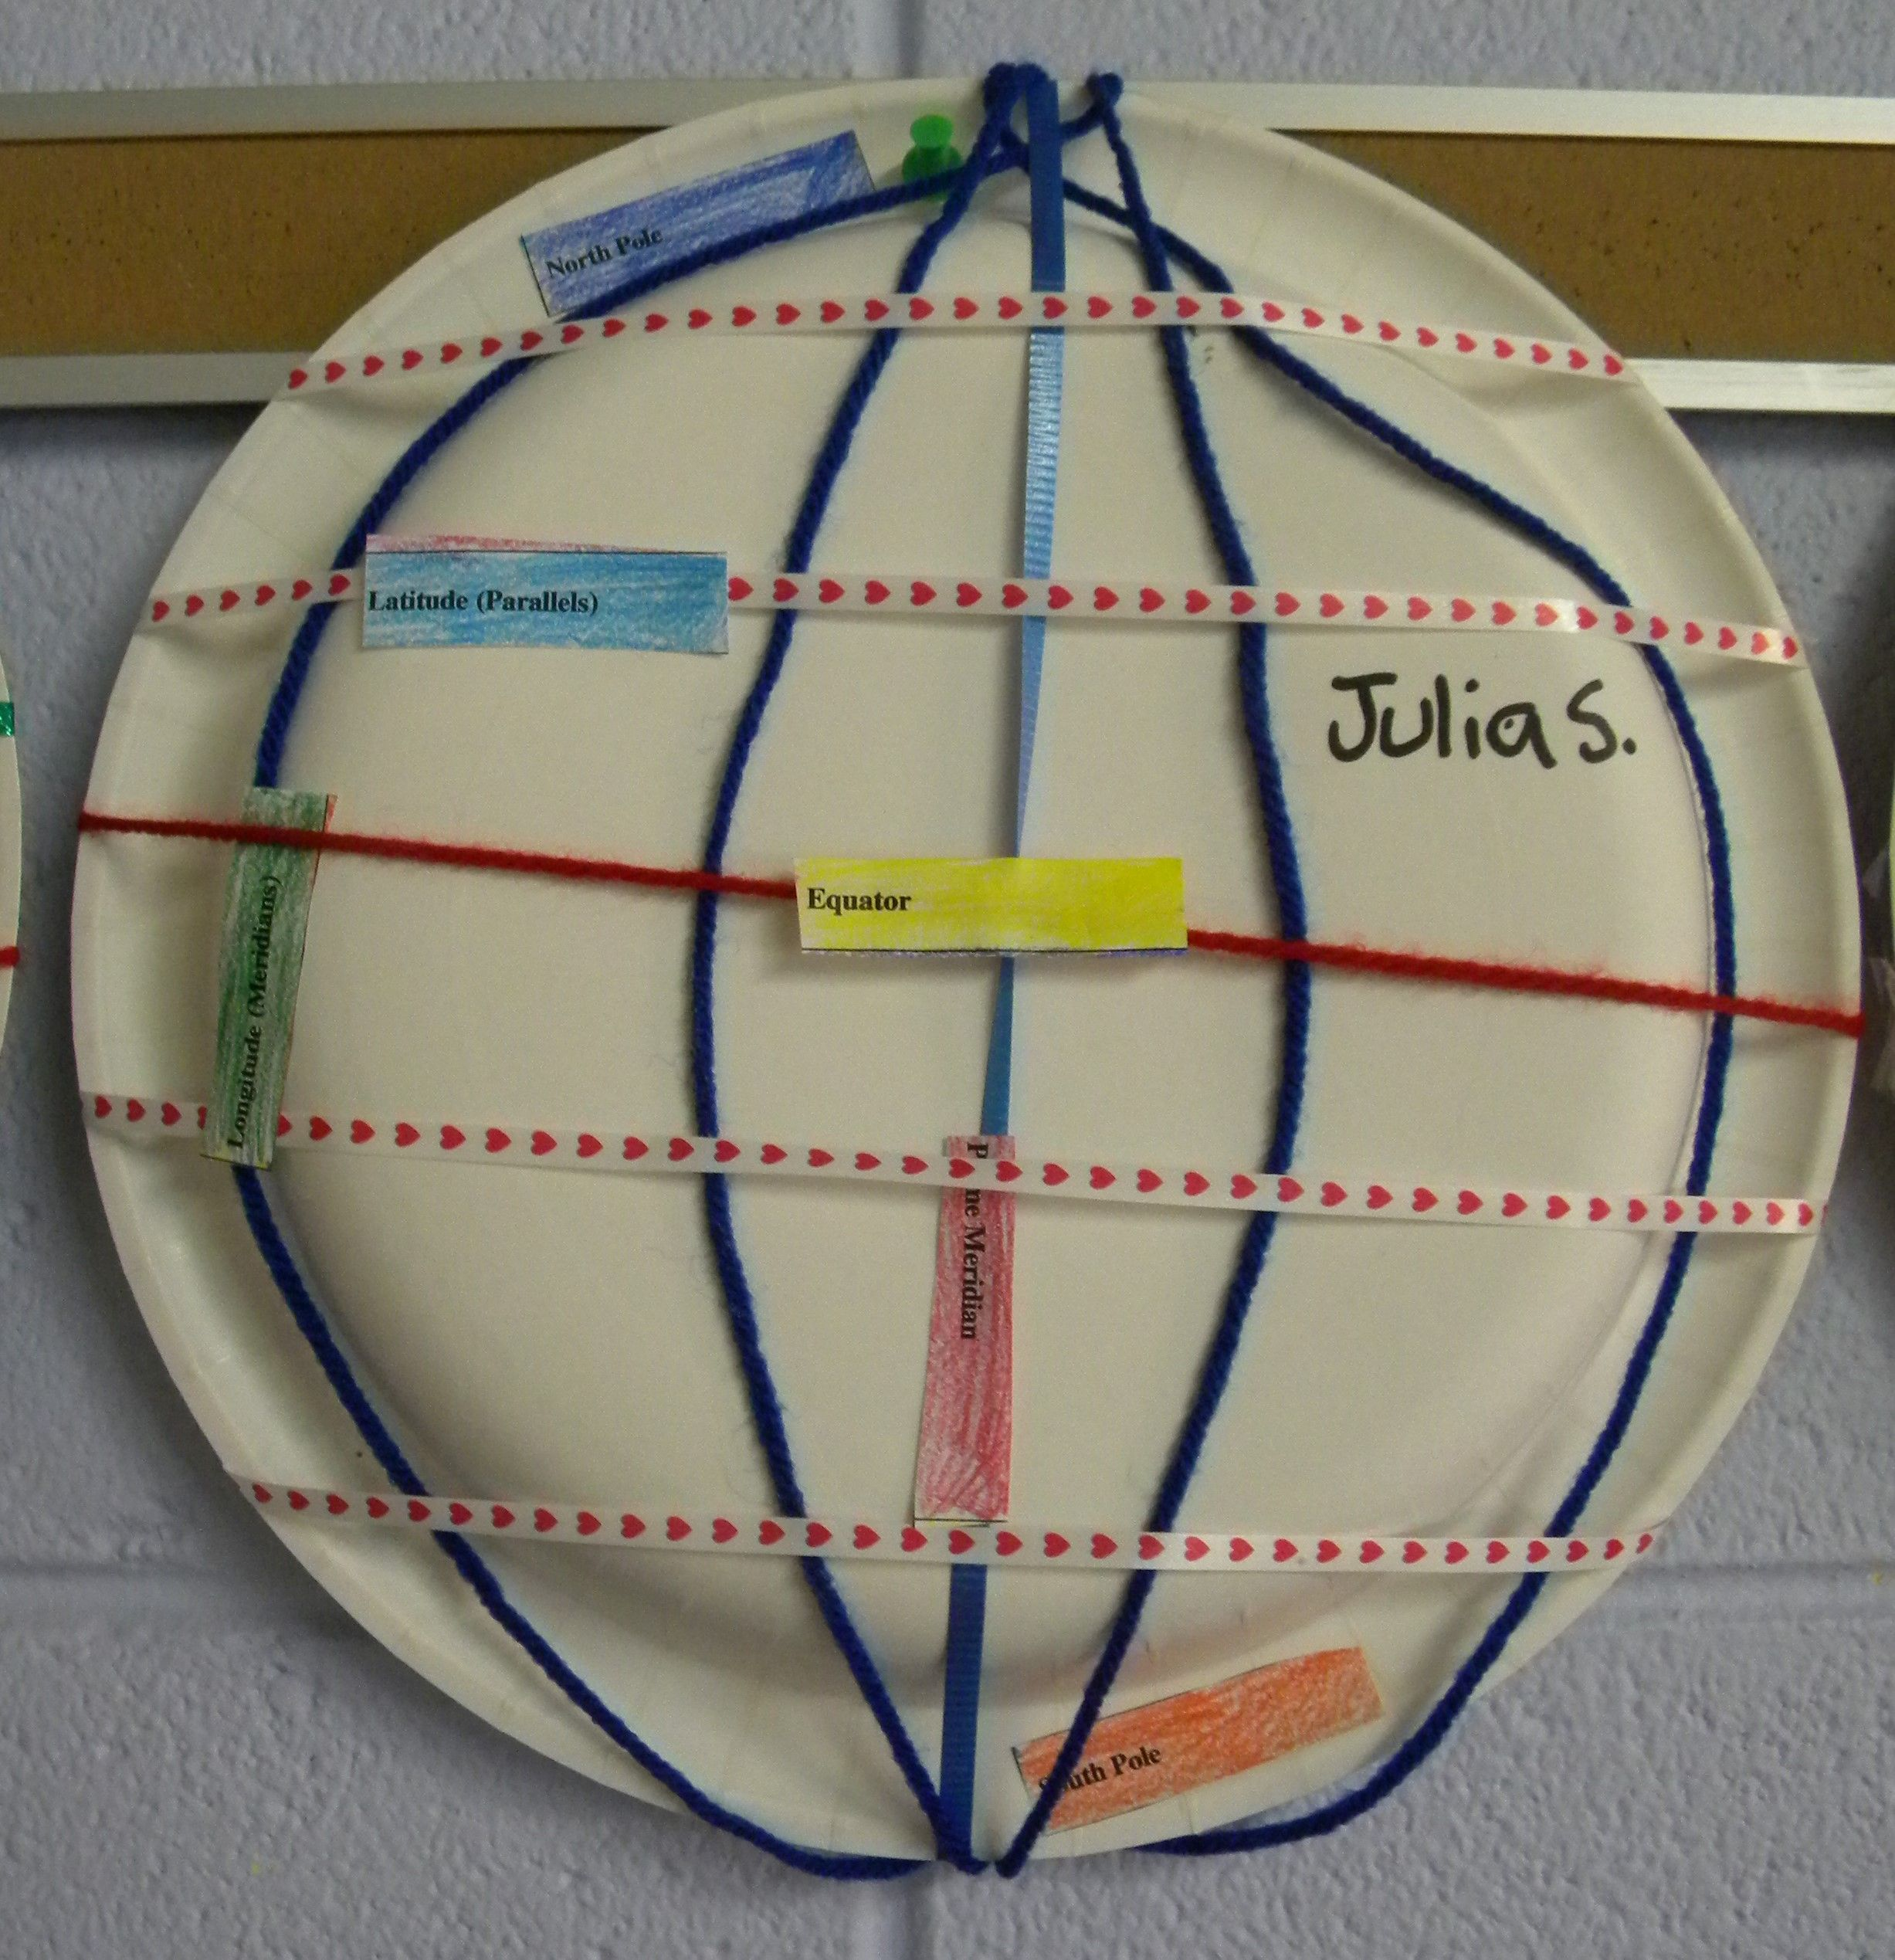 hight resolution of Project-based assessment--demonstrating latitude